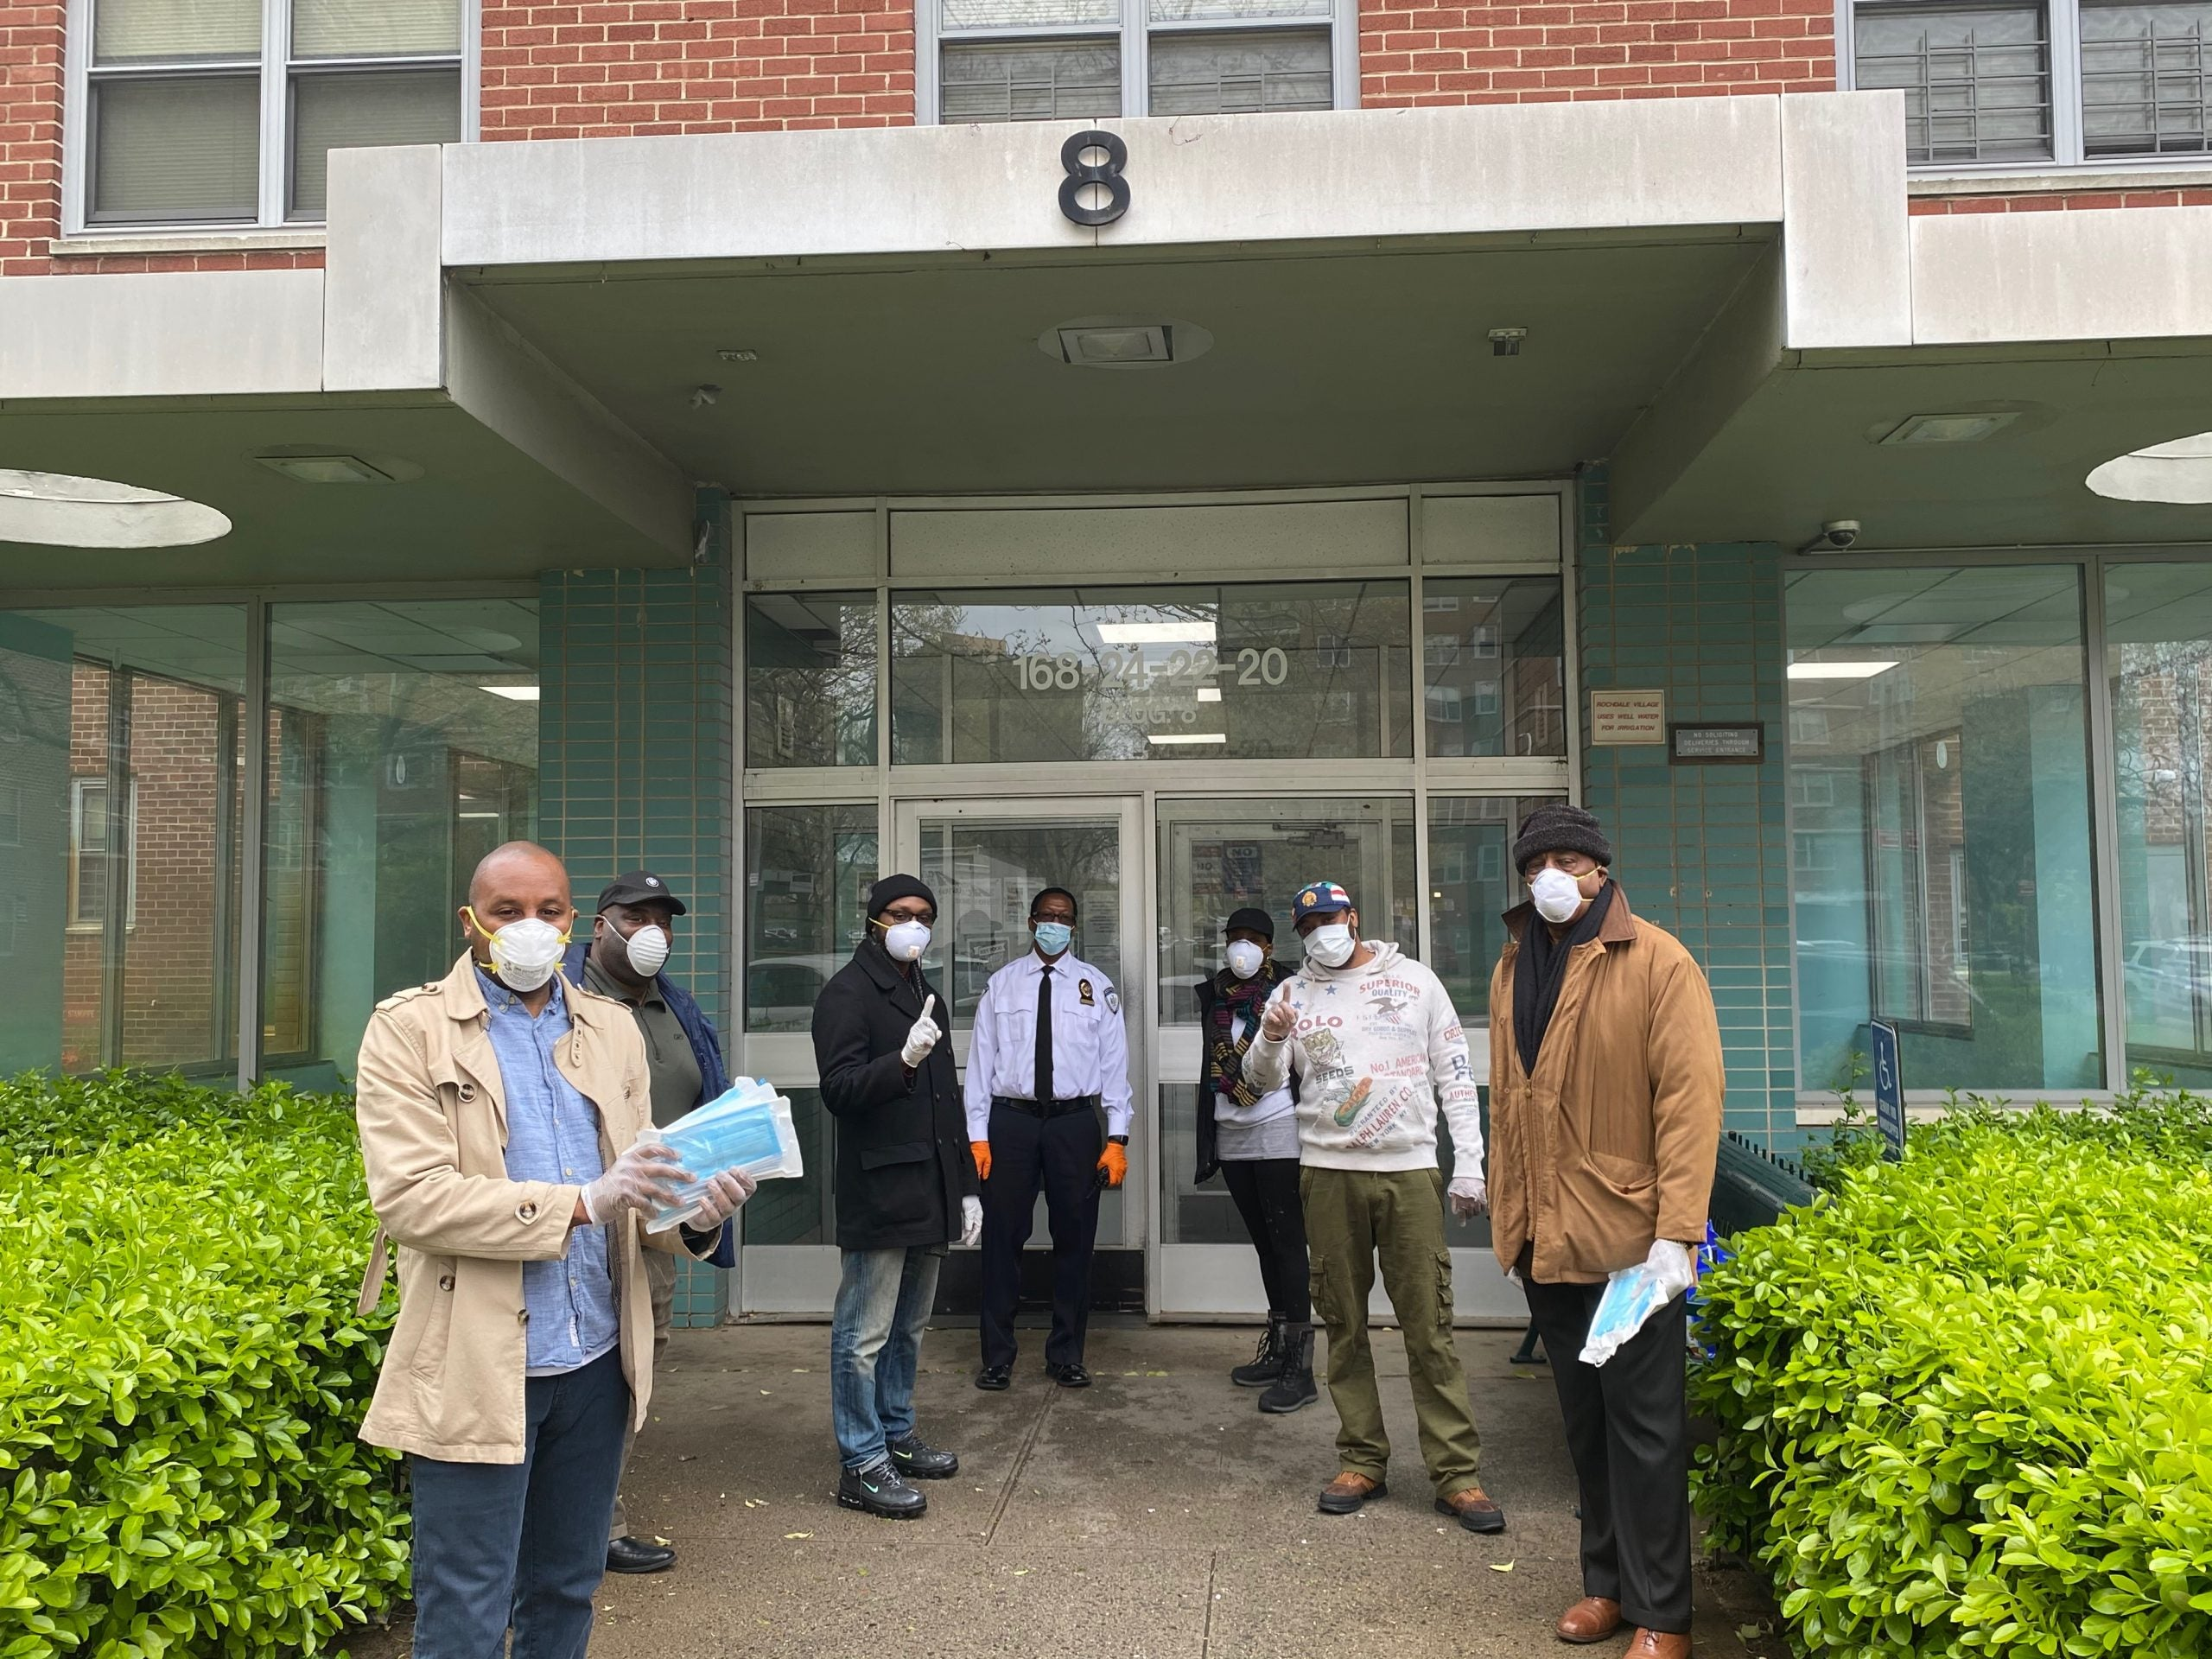 Members of OHBM donate masks throughout New York City